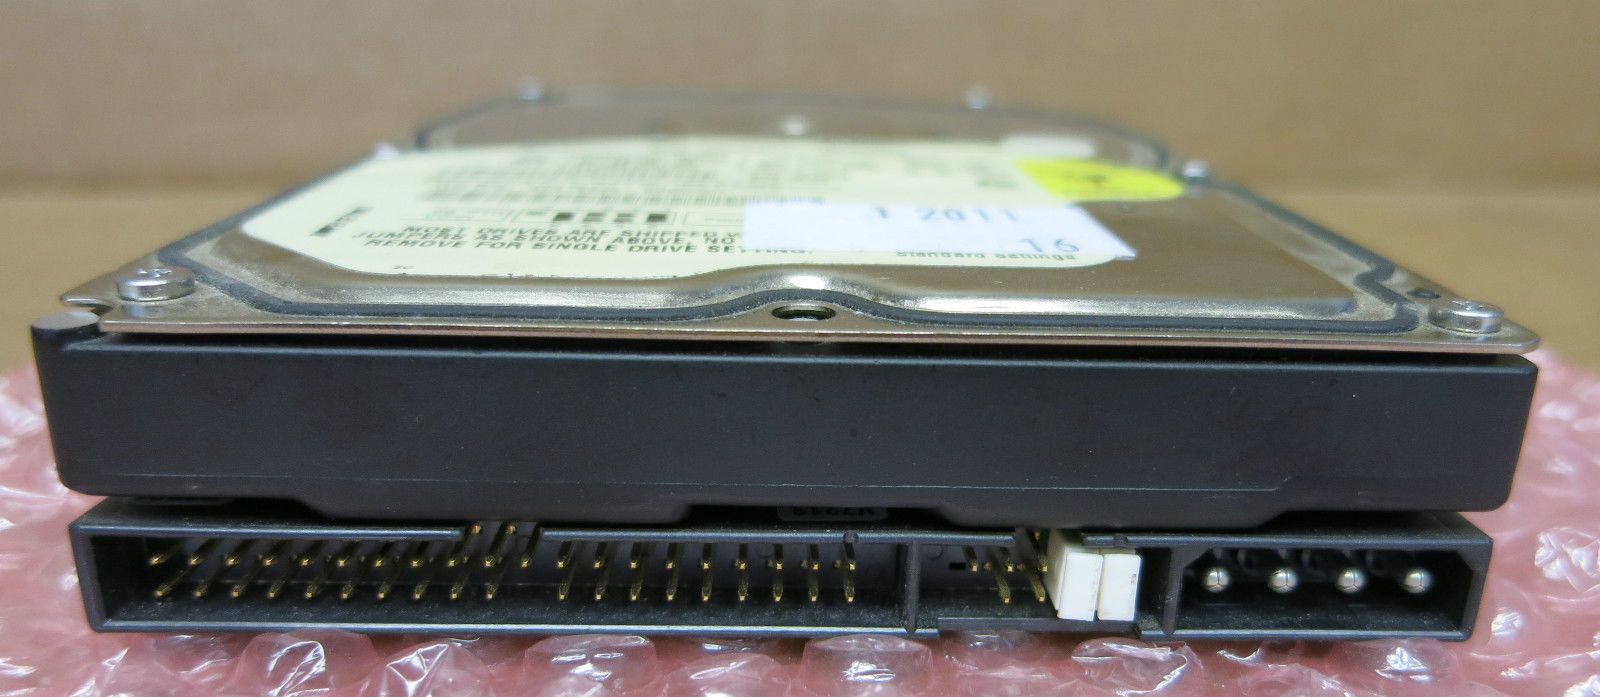 how to reset wd hard drive password